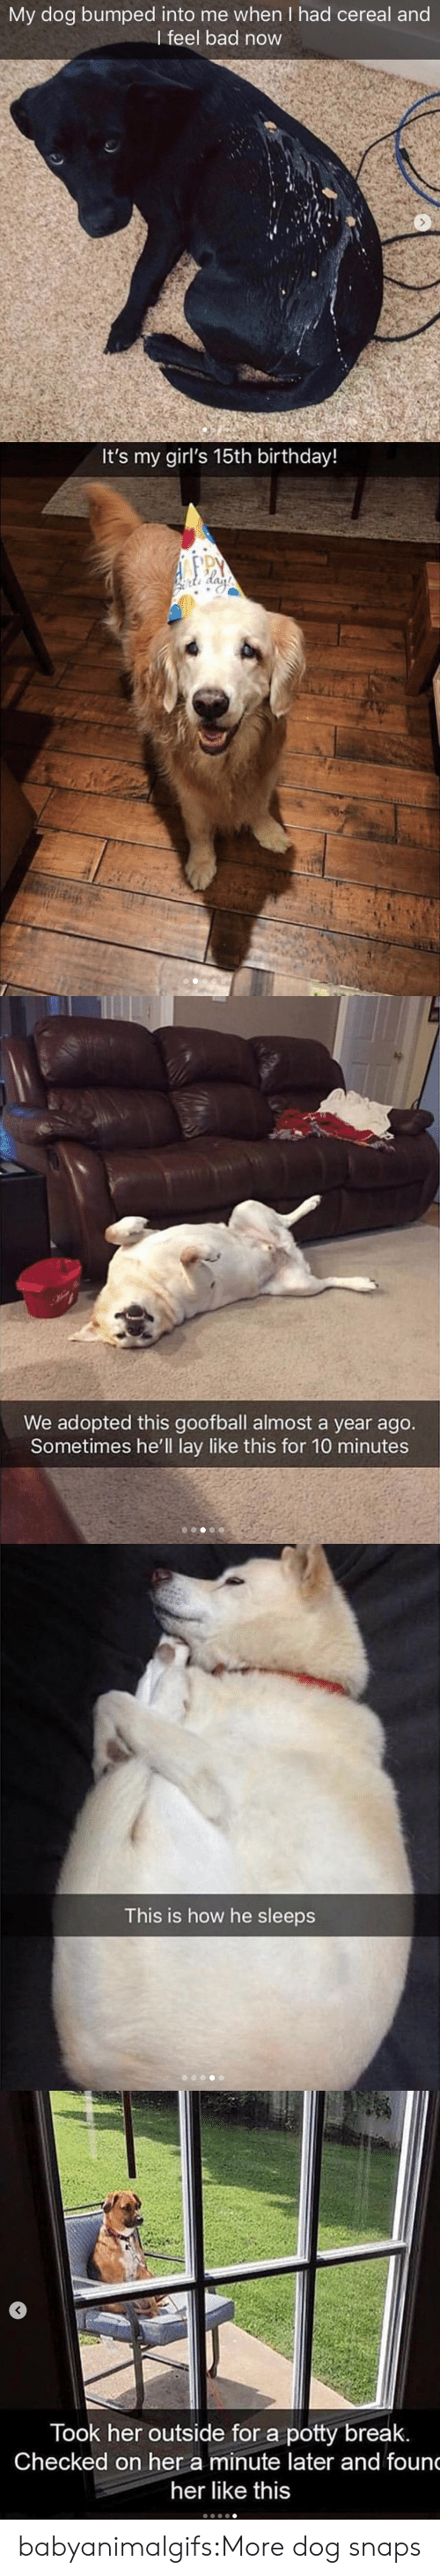 potty: My dog bumped into me when I had cereal and  I feel bad now   It's my girl's 15th birthday!   We adopted this goofball almost a year ago.  Sometimes he'll lay like this for 10 minutes   This is how he sleeps   Took her outside for a potty break  Checked on her a minute later and foun  her like this babyanimalgifs:More dog snaps